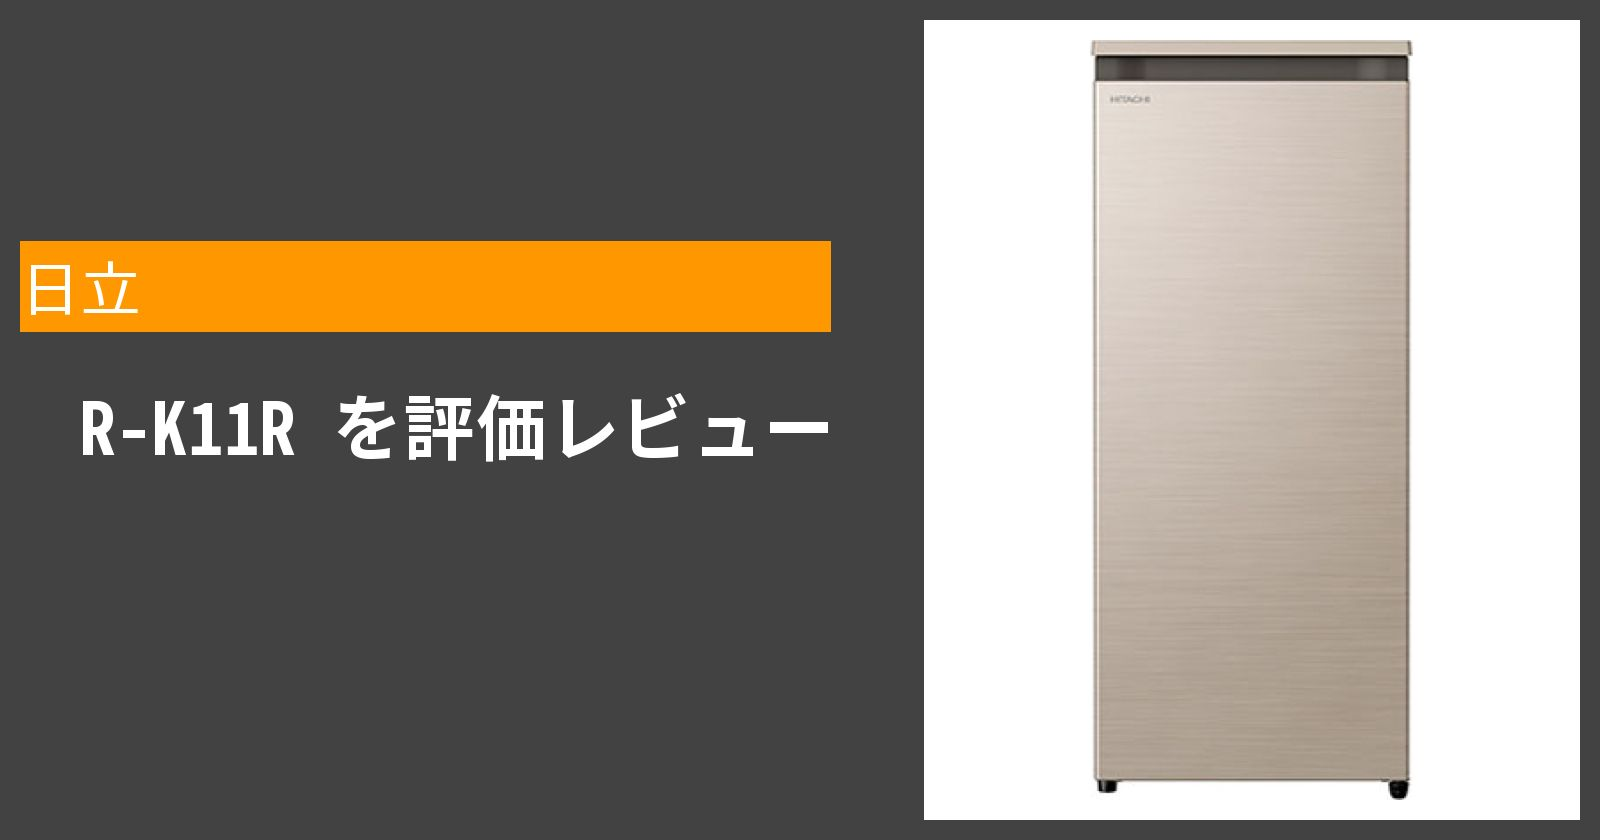 R-K11Rを徹底評価